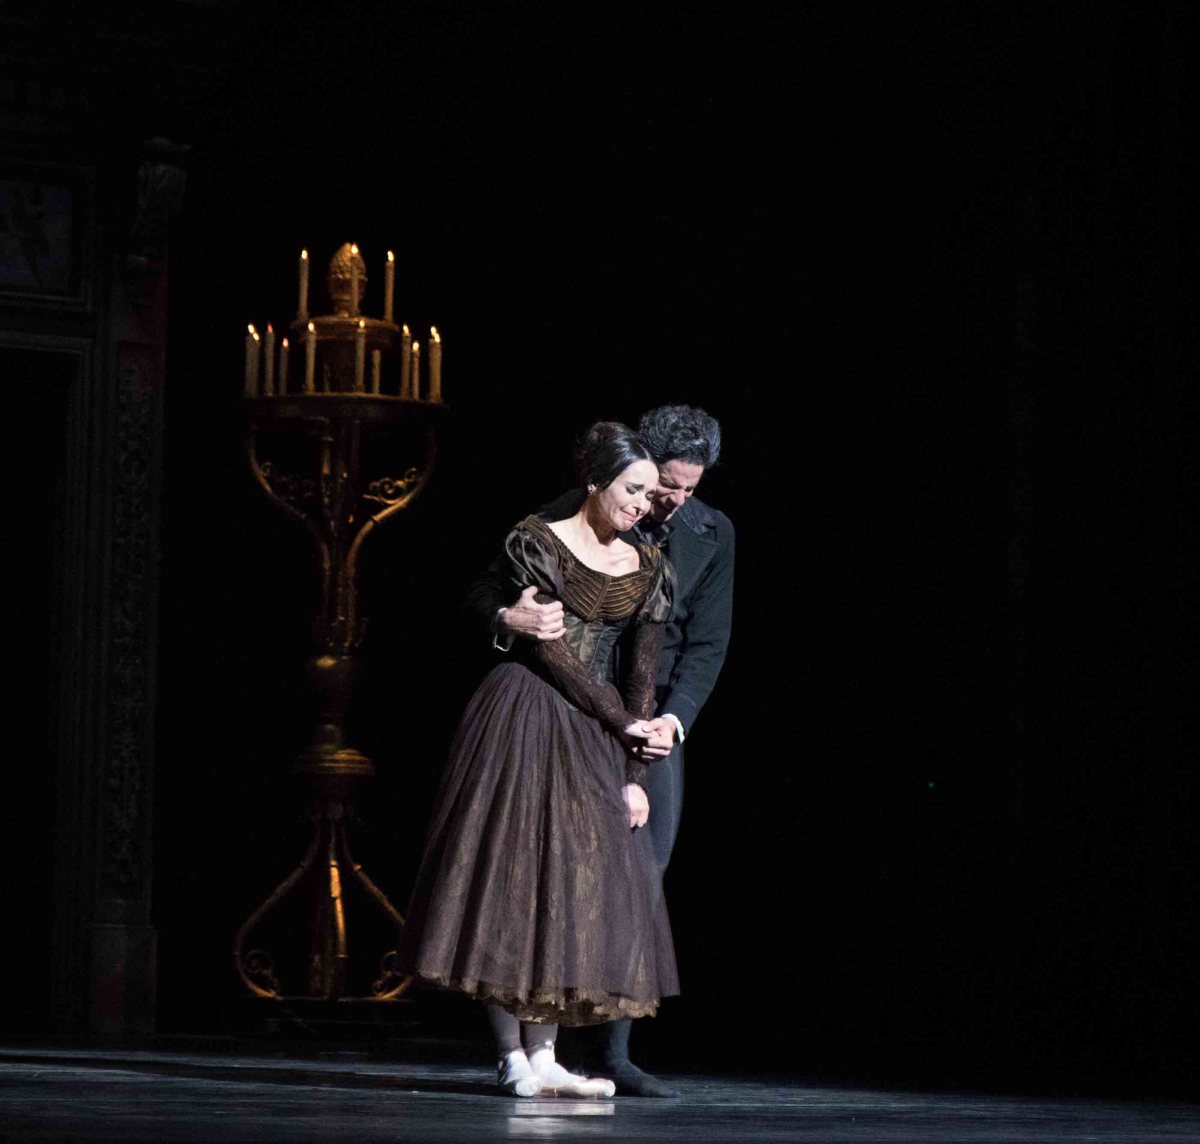 Diana Vishneva final ABT performance Onegin